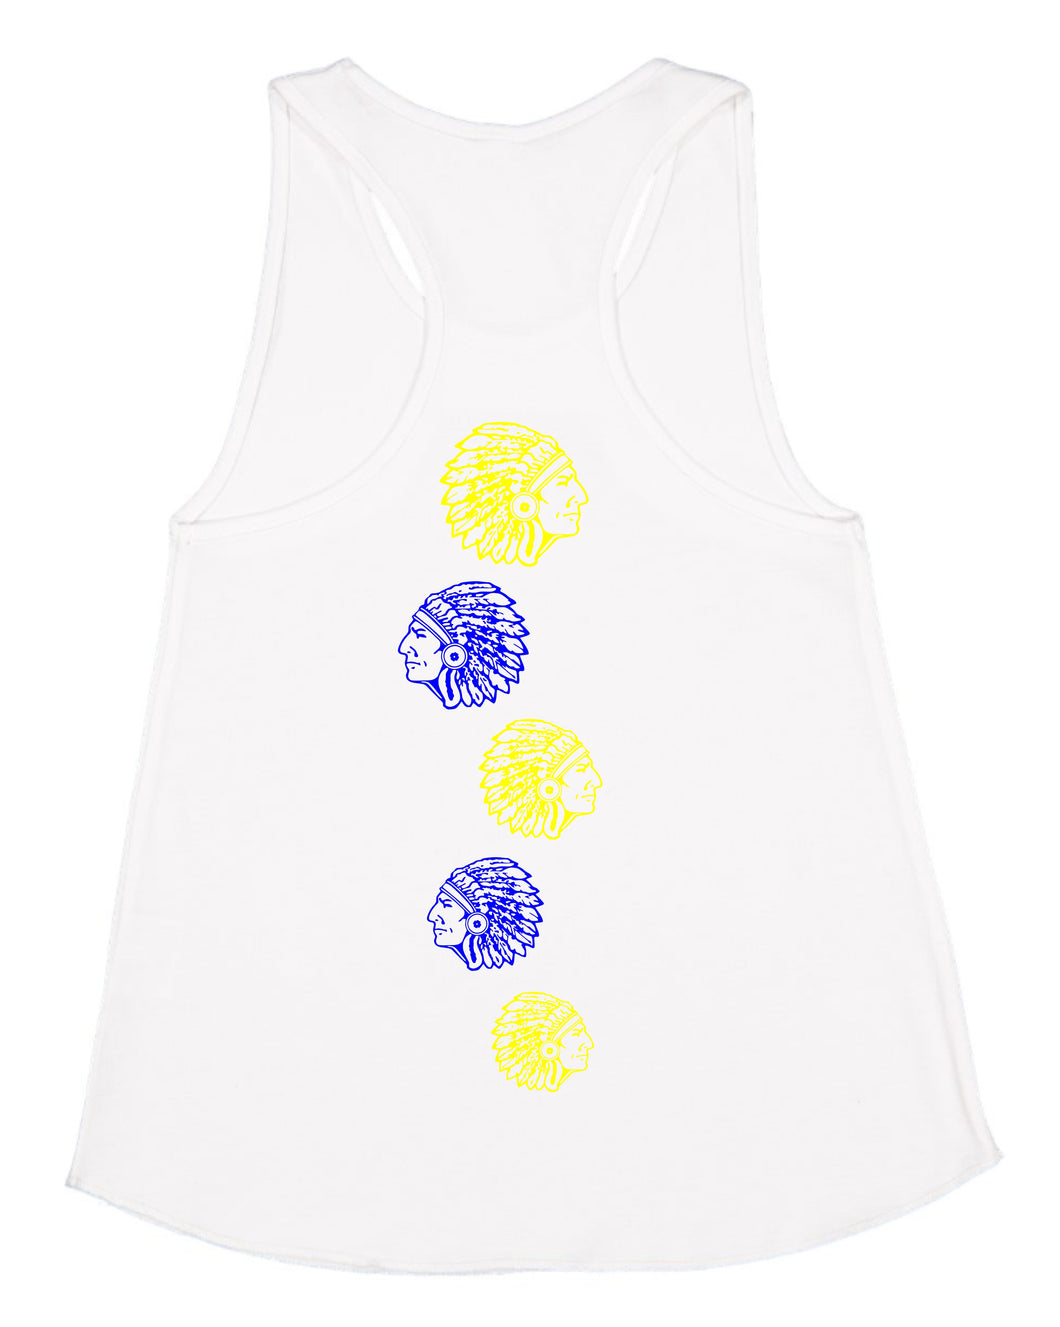 Warrior Tank, White Youth